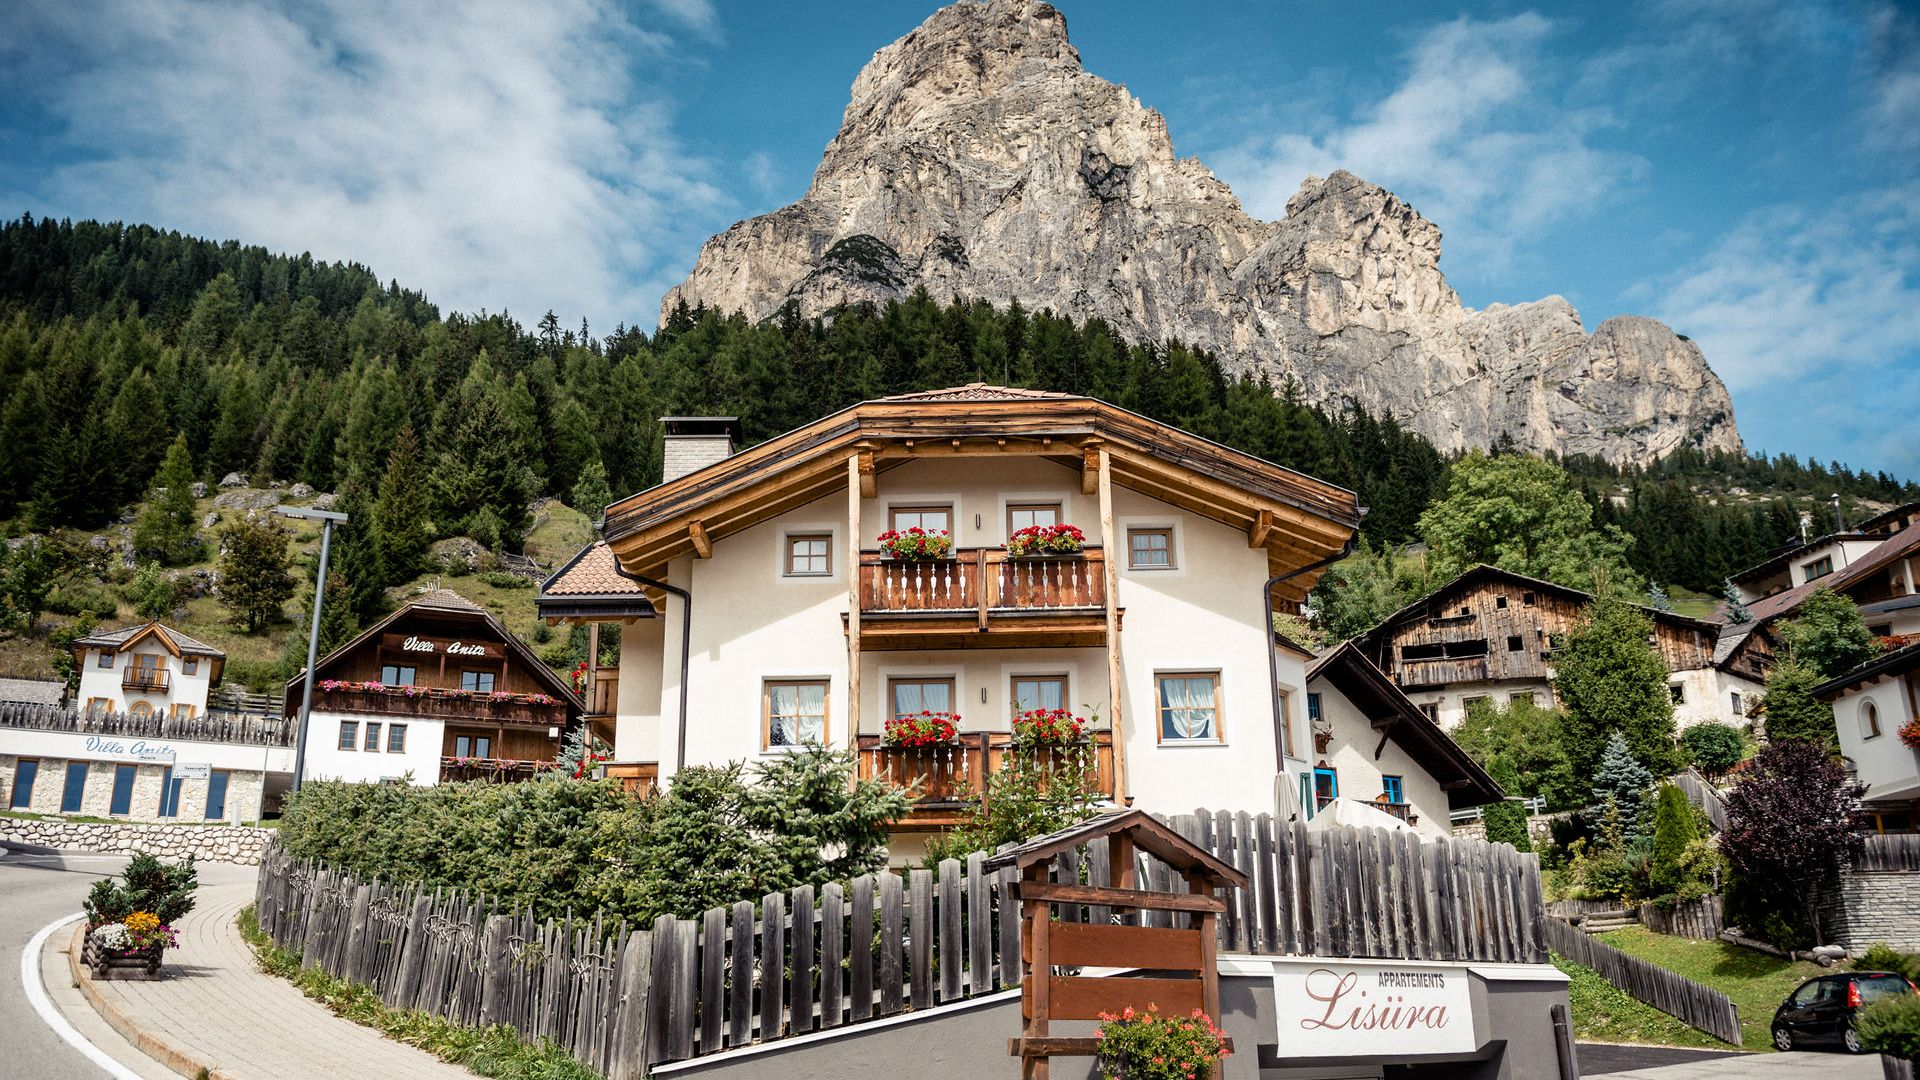 Bilder: Apartments Lisüra in Corvara